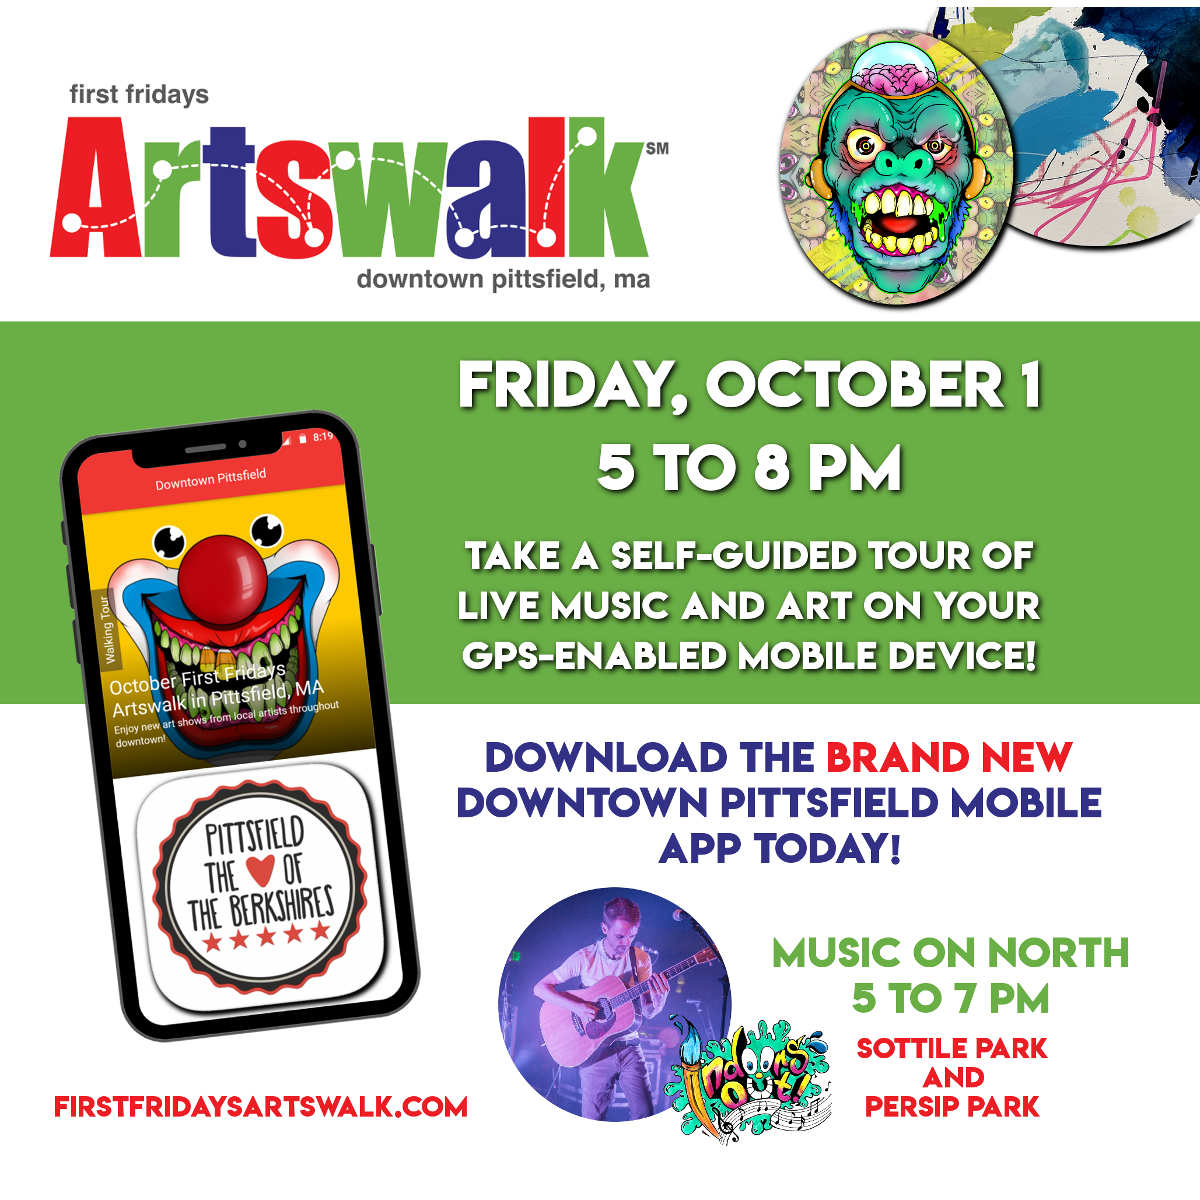 October First Fridays Artswalk and Music on North, Pittsfield MA